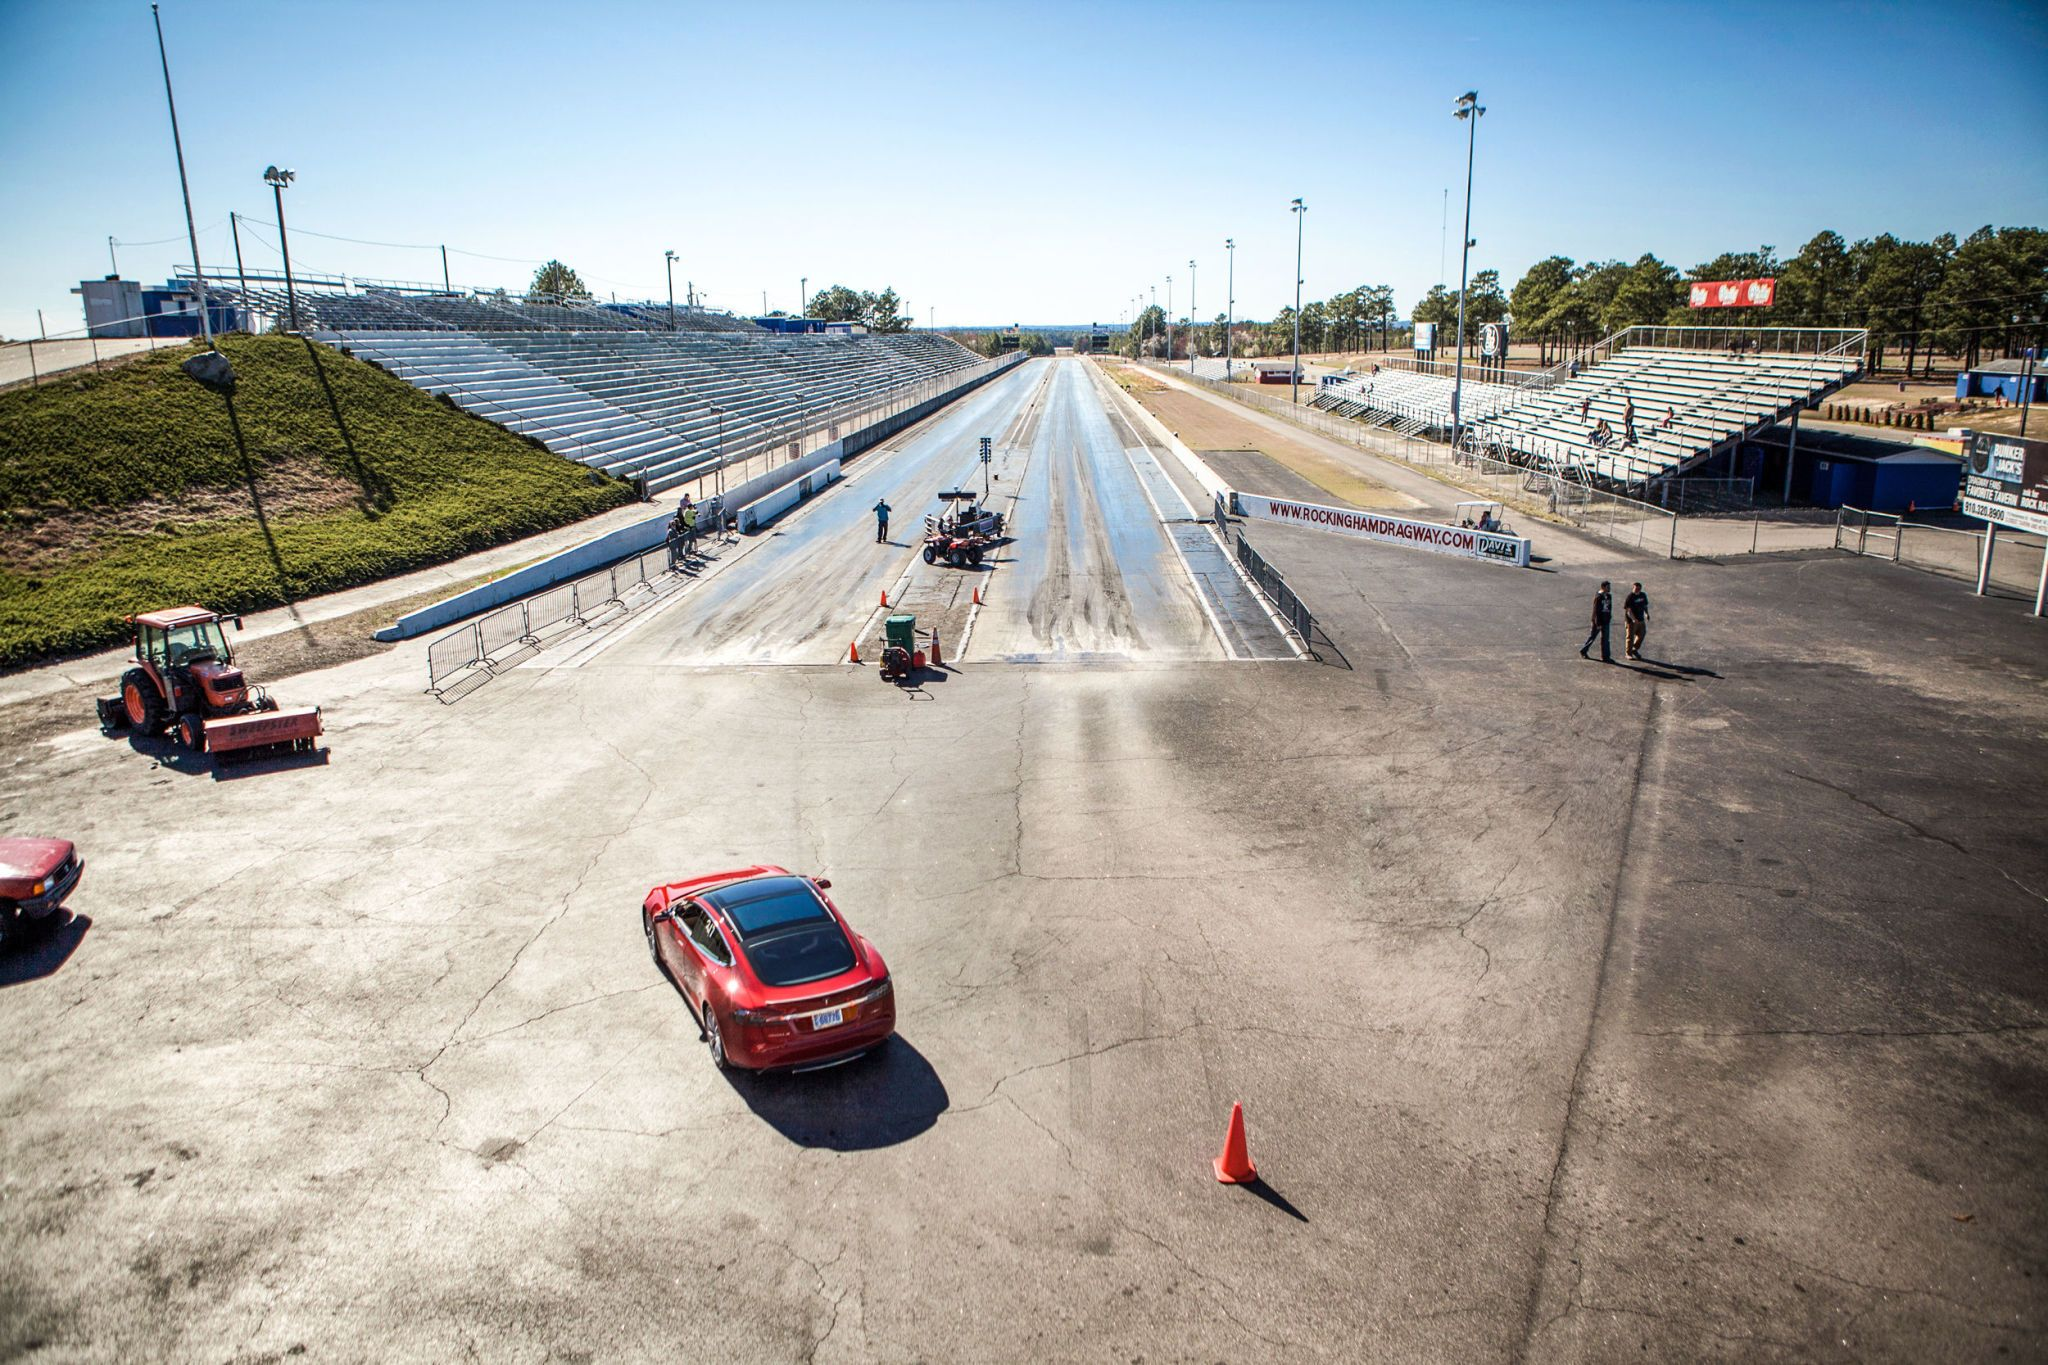 Watch the Tesla D Dominate at the Drag Strip